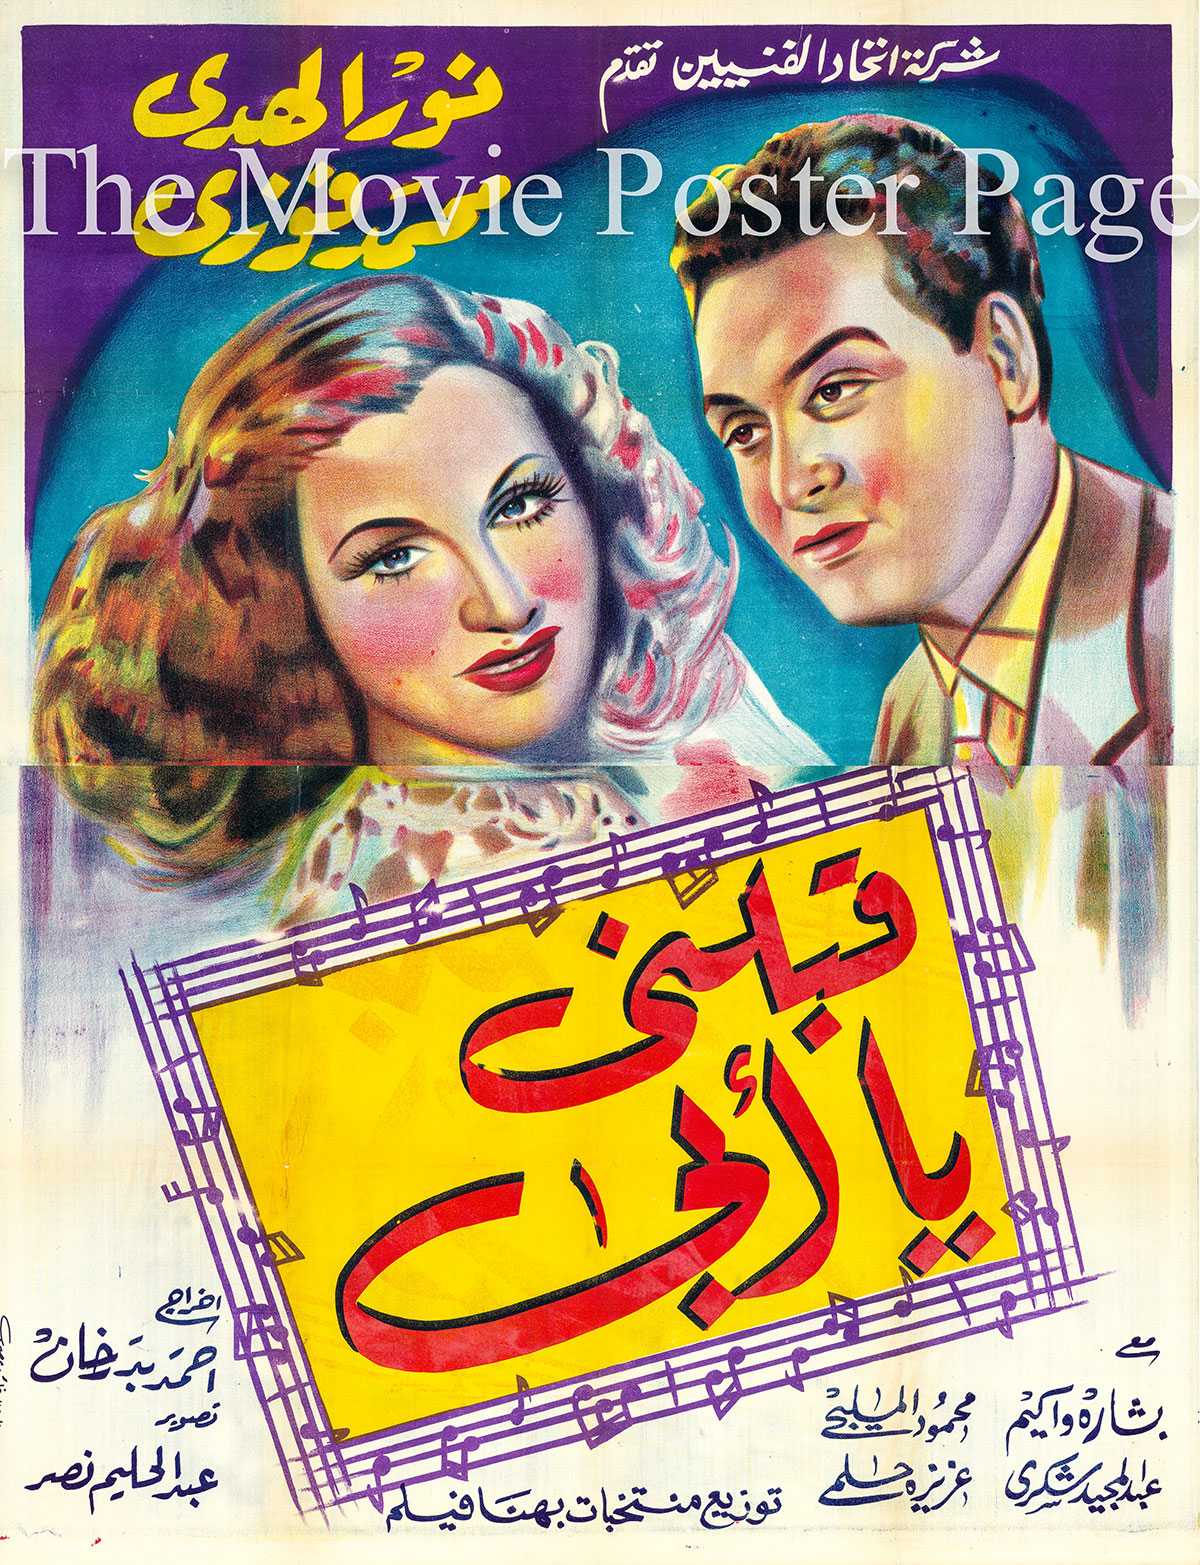 Pictured is an Egyptian promotional poster for the 1947 Ahmed Badrakhan film Kiss Me Father starring Nour Al Hoda.